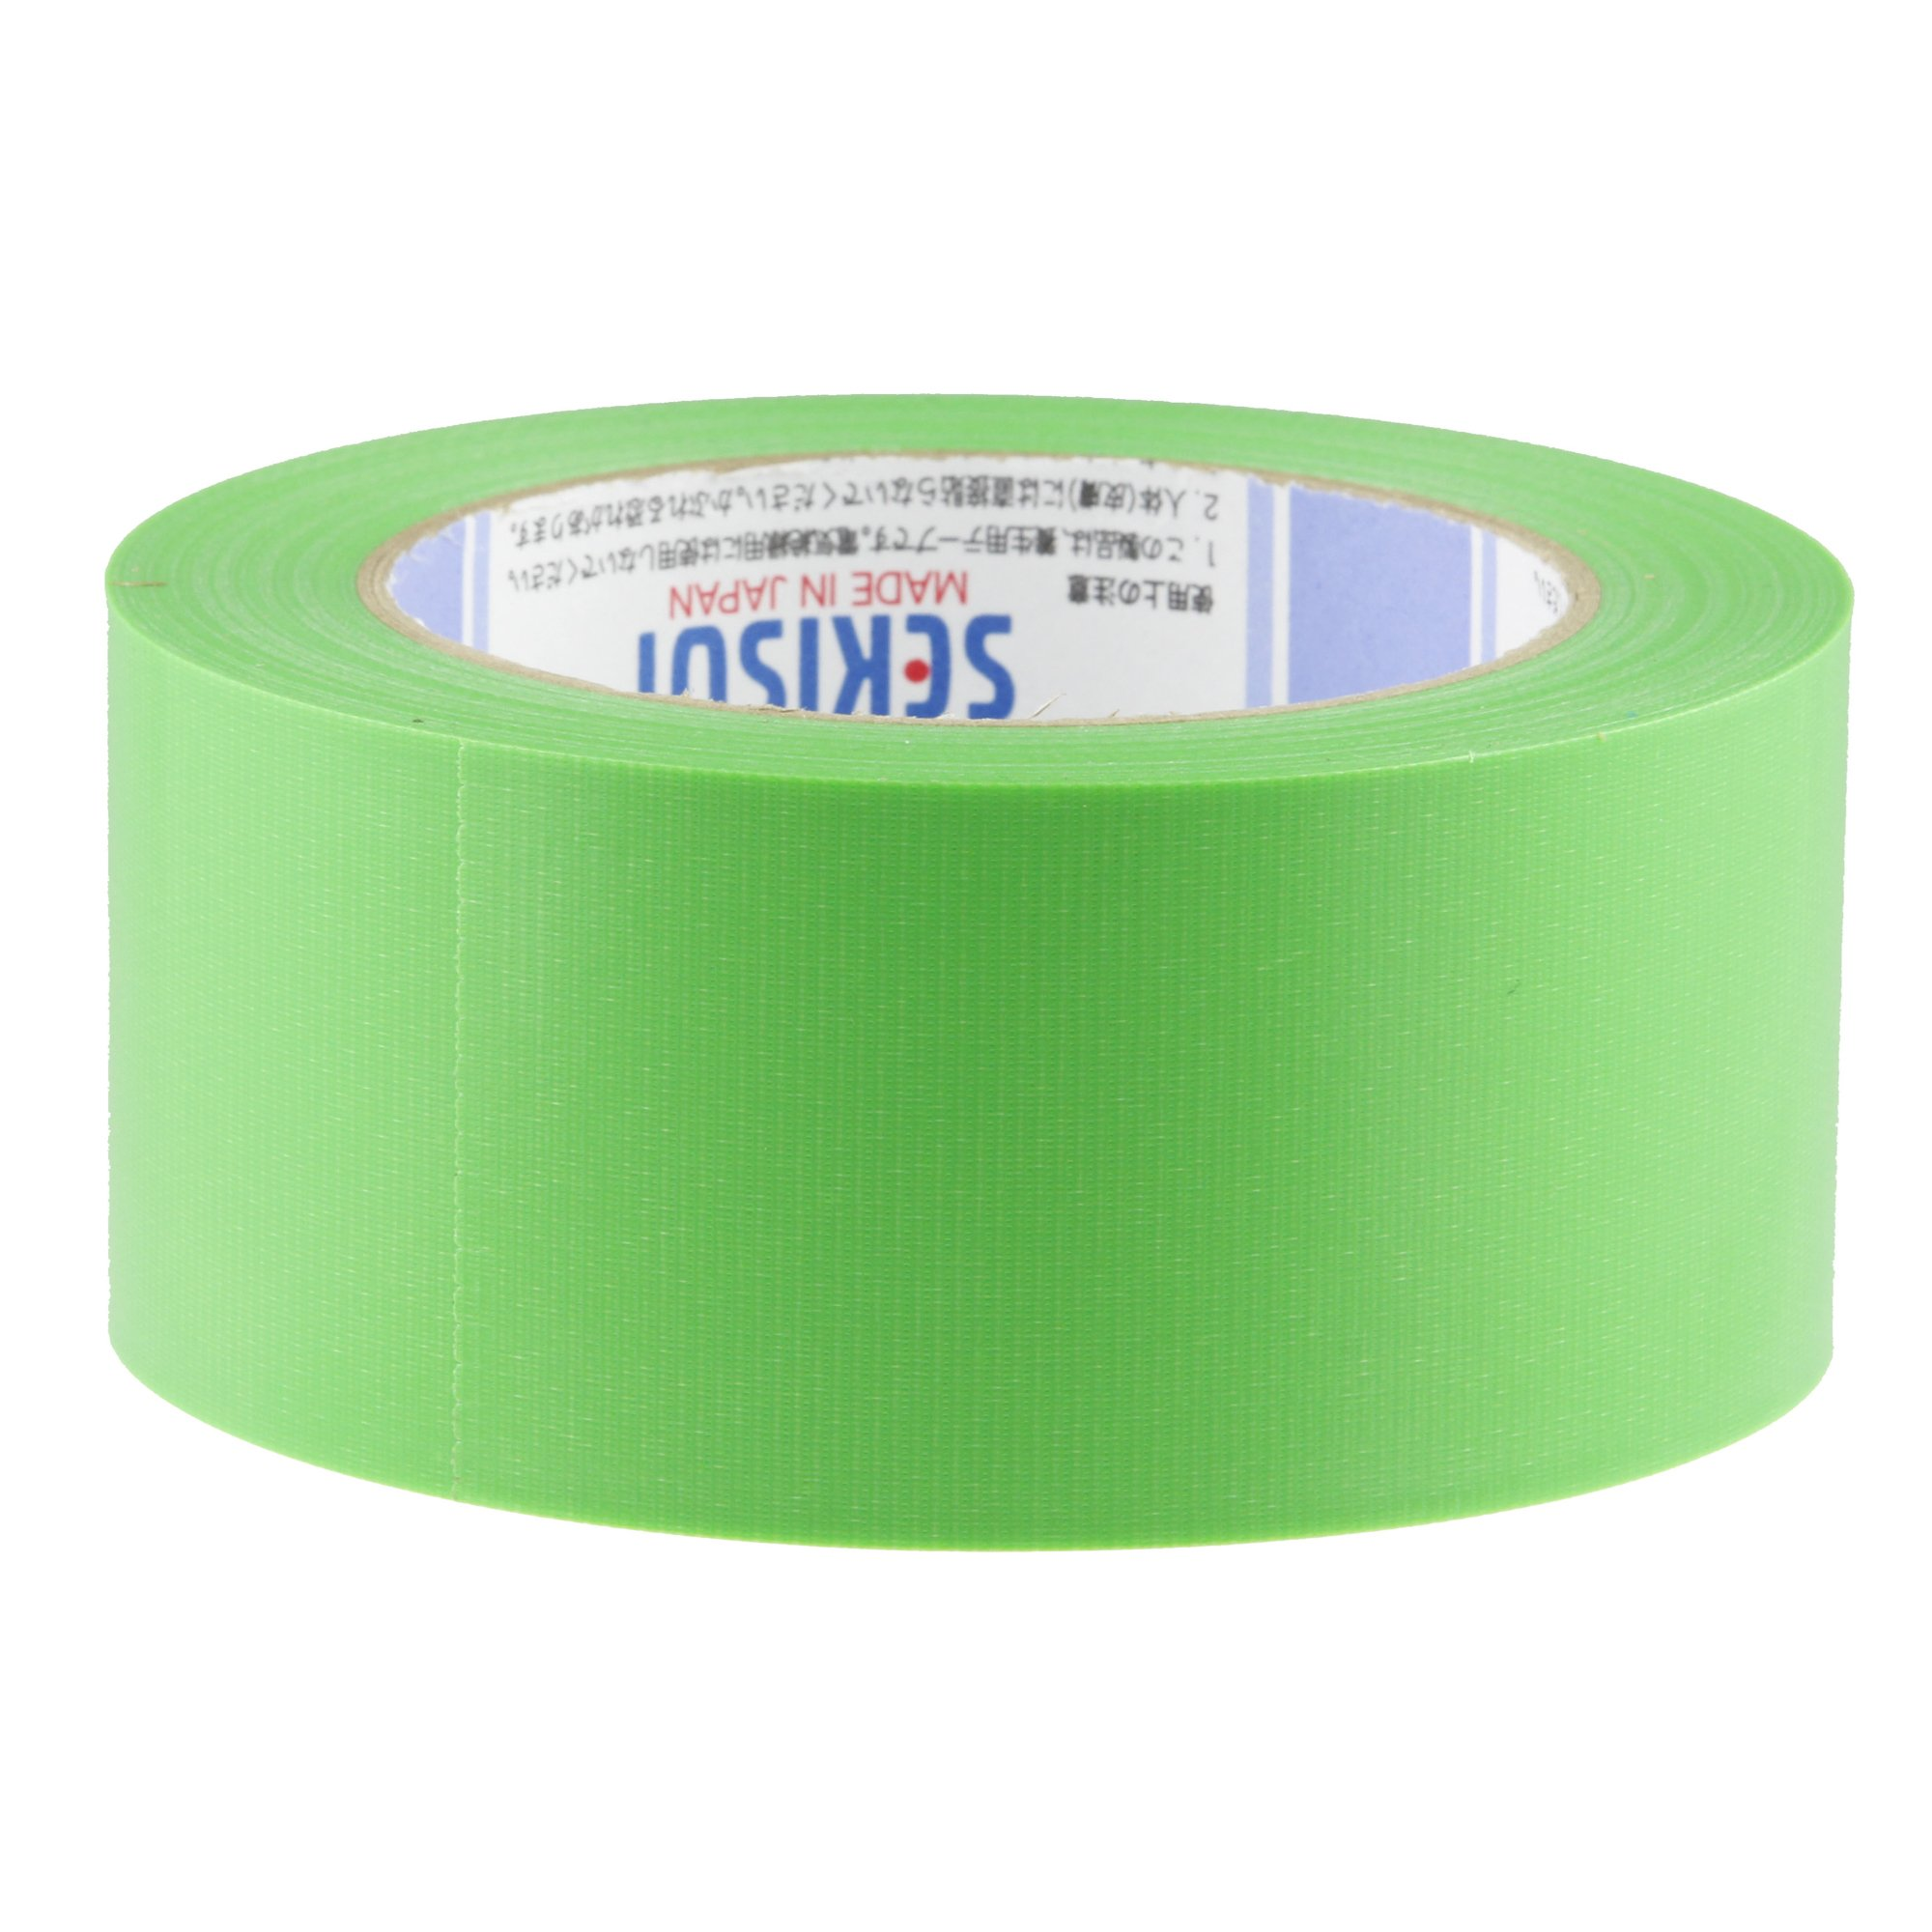 Sekisui Chemical curing tape spud light tape No.733 Green width 50mm × length 50m winding 1 box (Vol. 30 pieces)